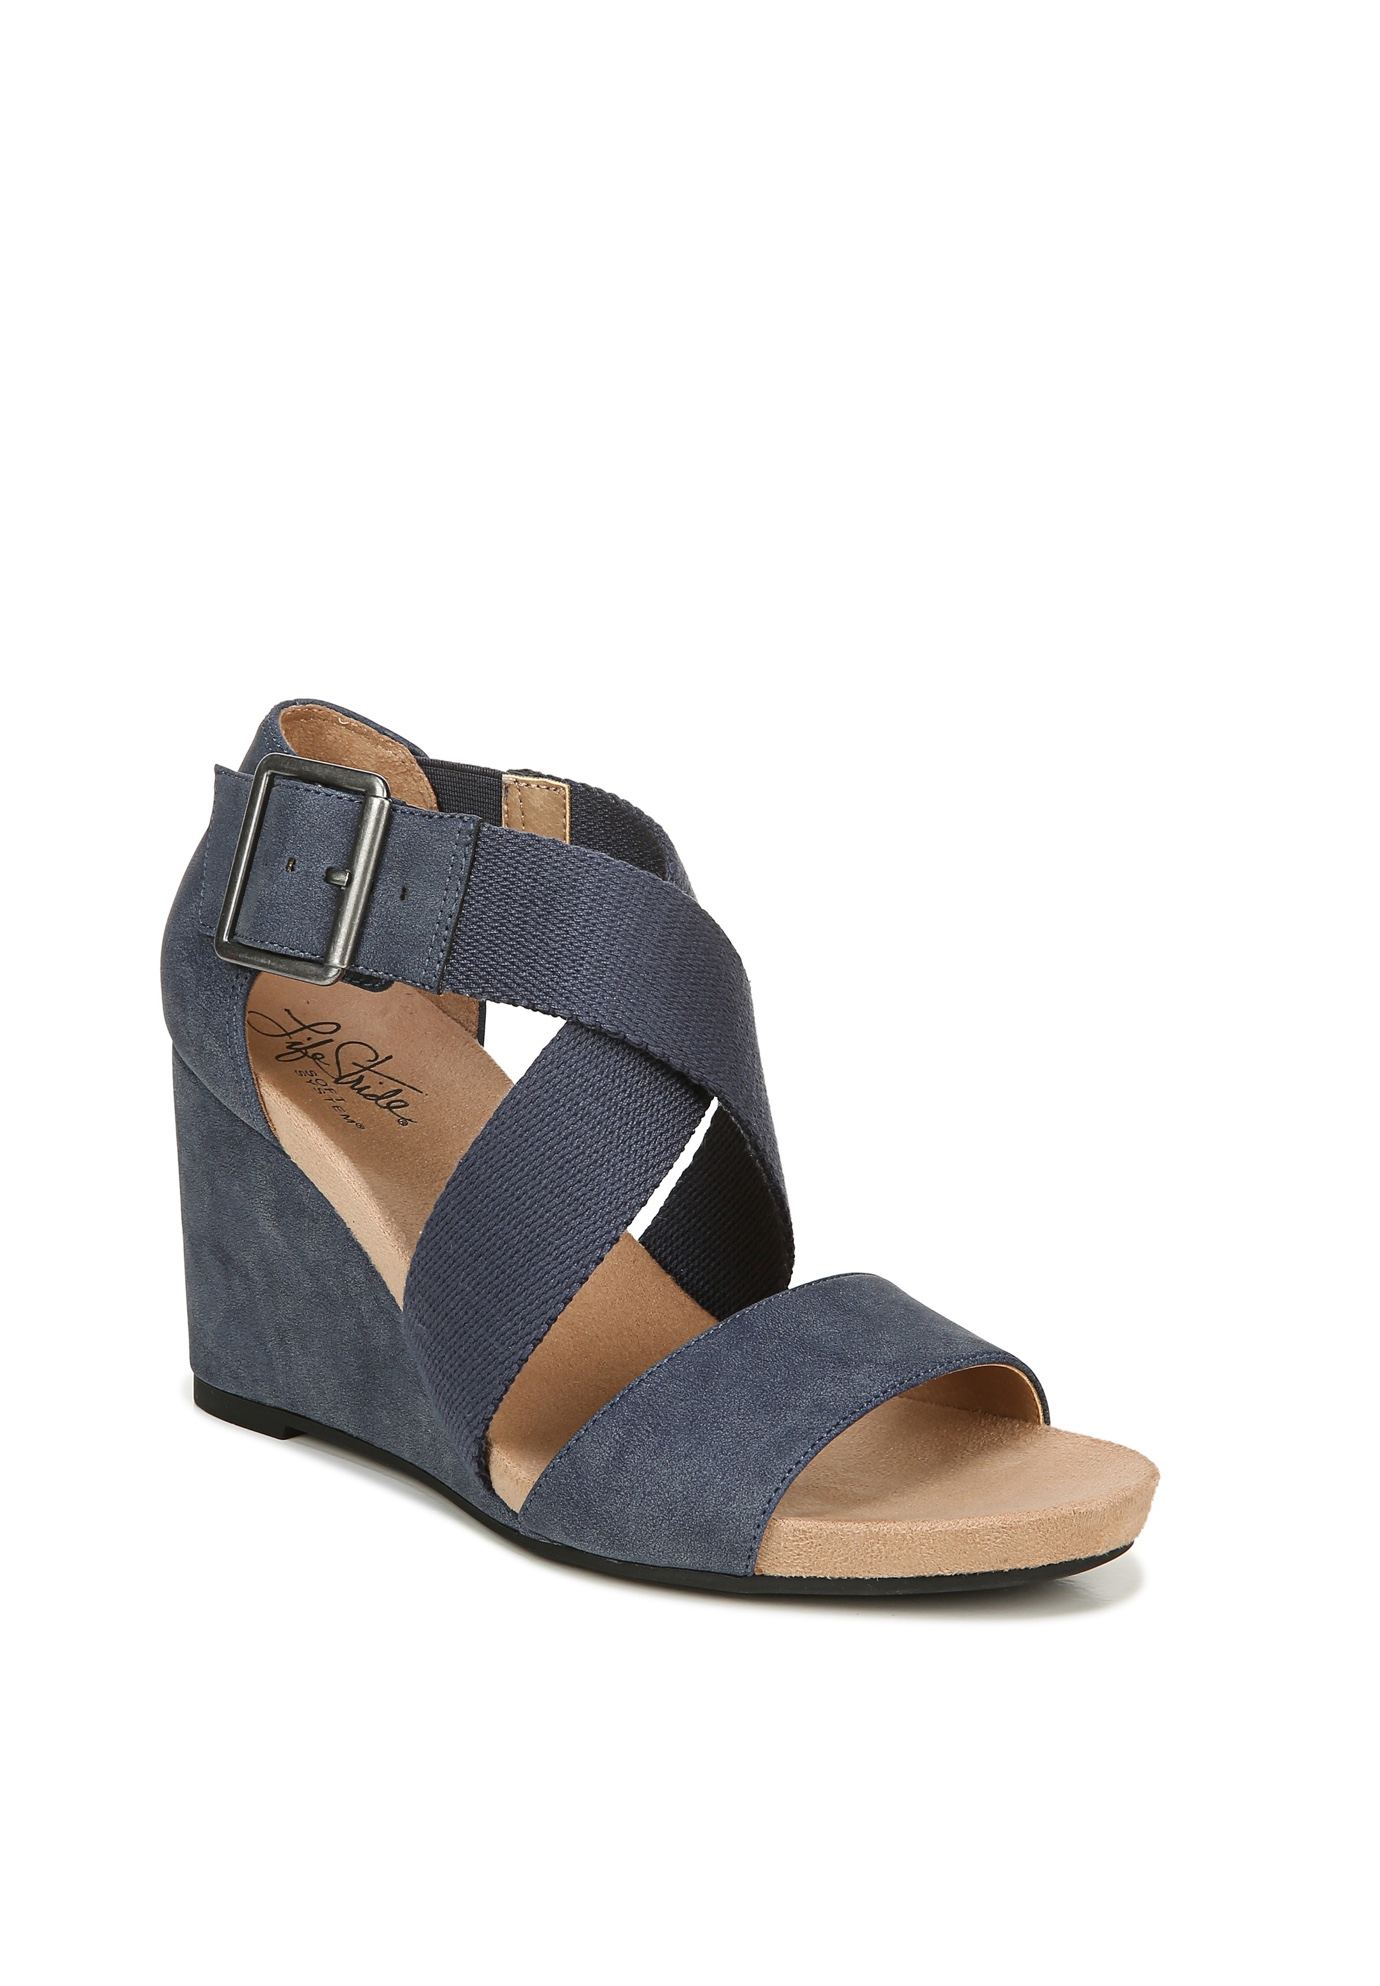 Hayden Sandals by LifeStride,